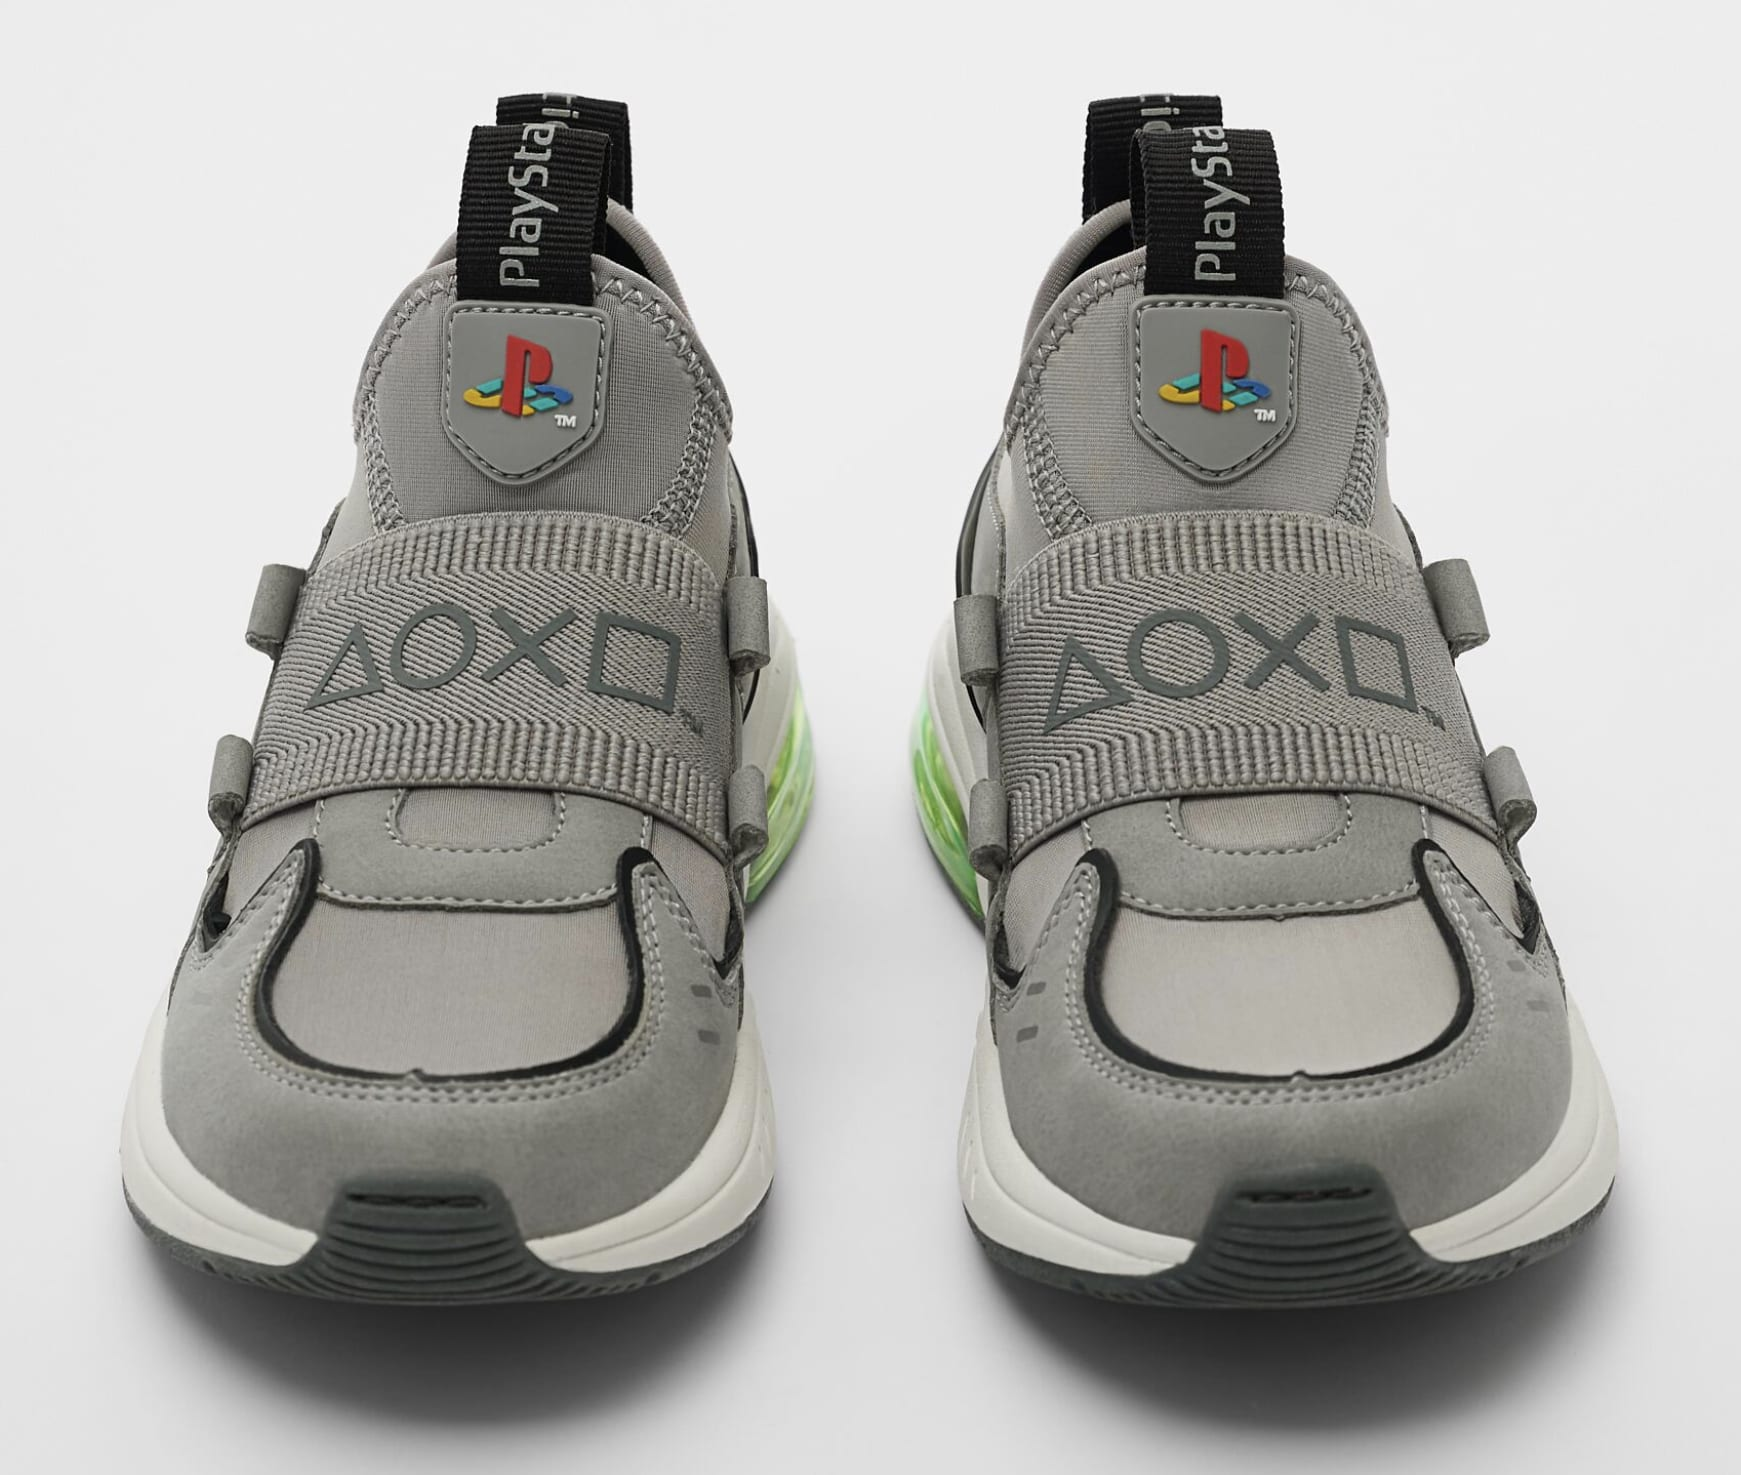 Sony x Zara Playstation Interactive Sneakers Front